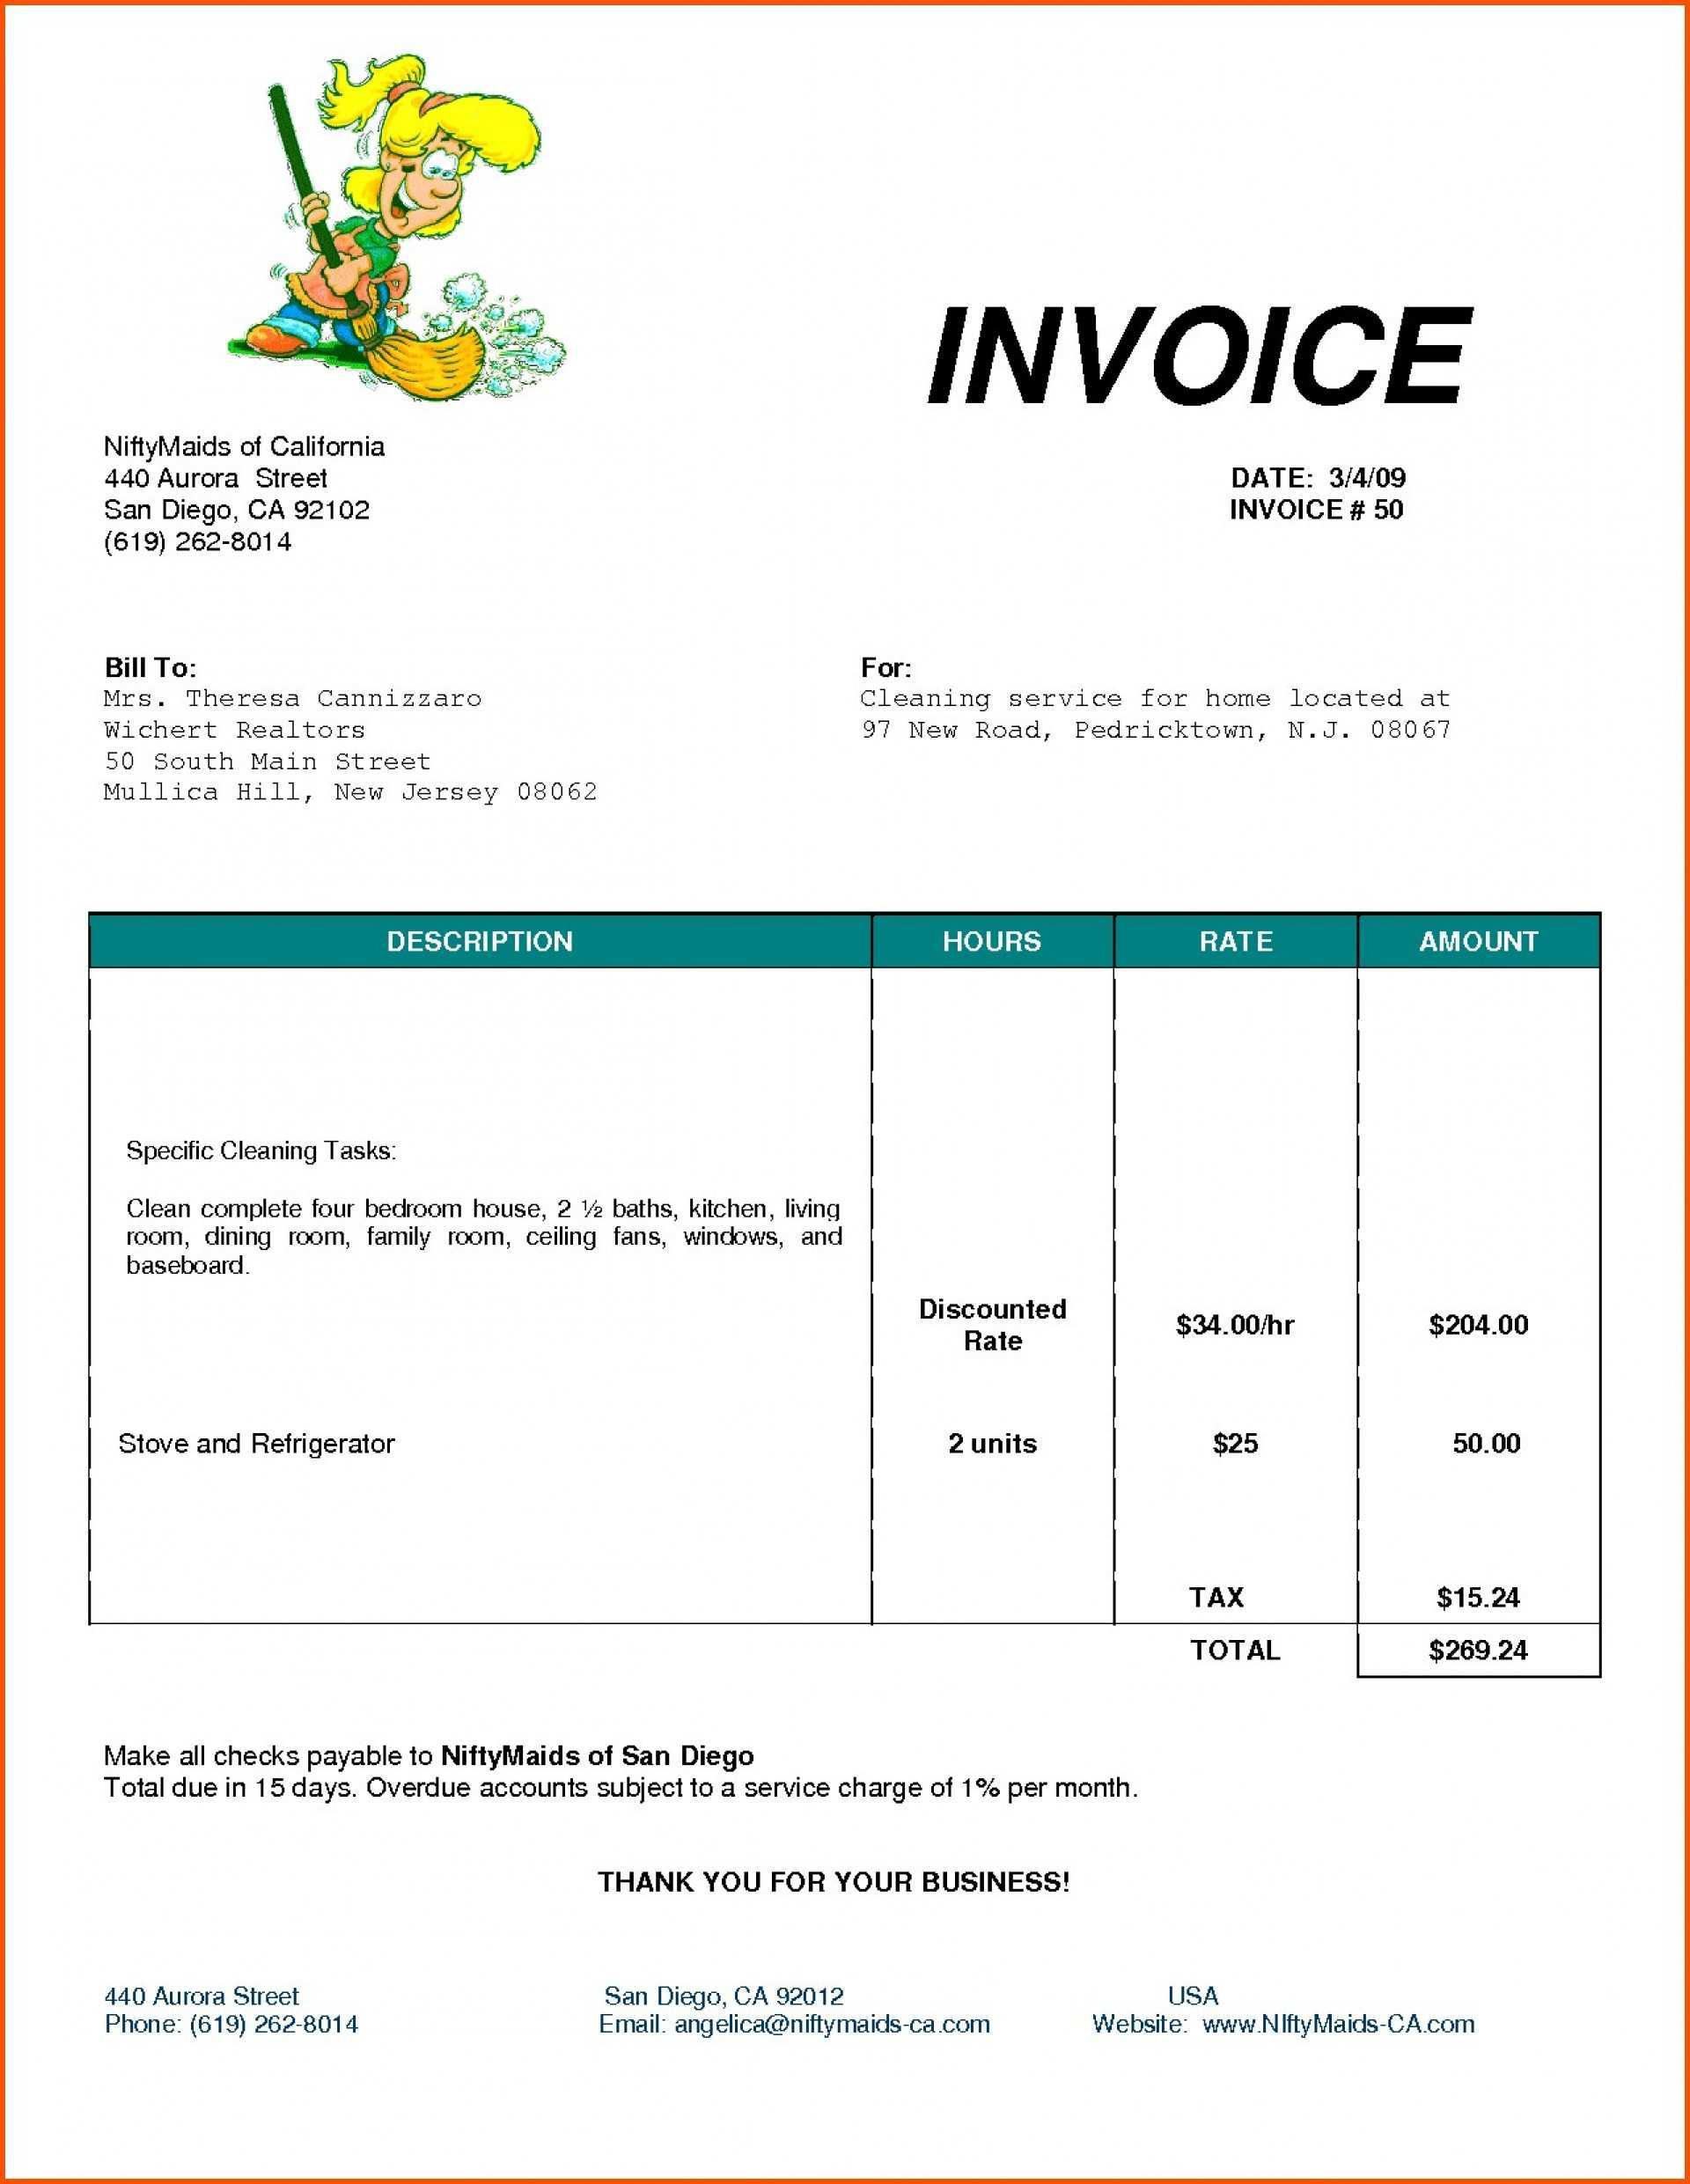 69 Customize Our Free Lawn Care Invoice Template Pdf For Free For Lawn Care Invoice Template Pdf Cards Design Templates